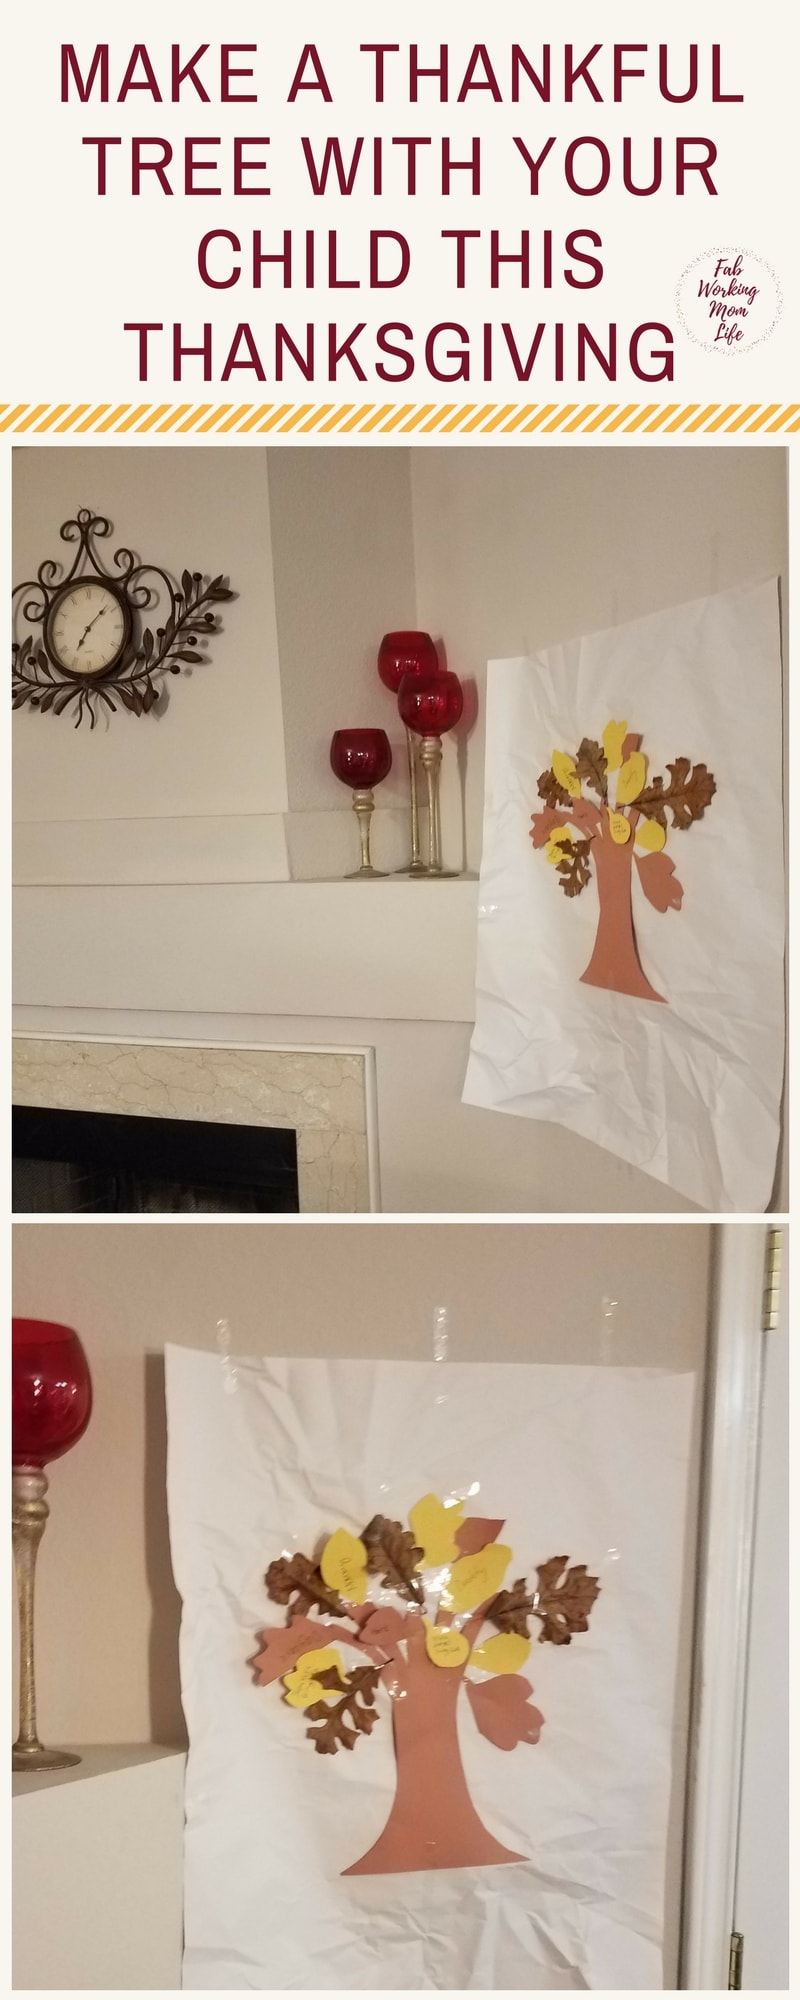 Make a Thankful Tree with your Child this Thanksgiving #thanksgiving #toddlers #preschoolers